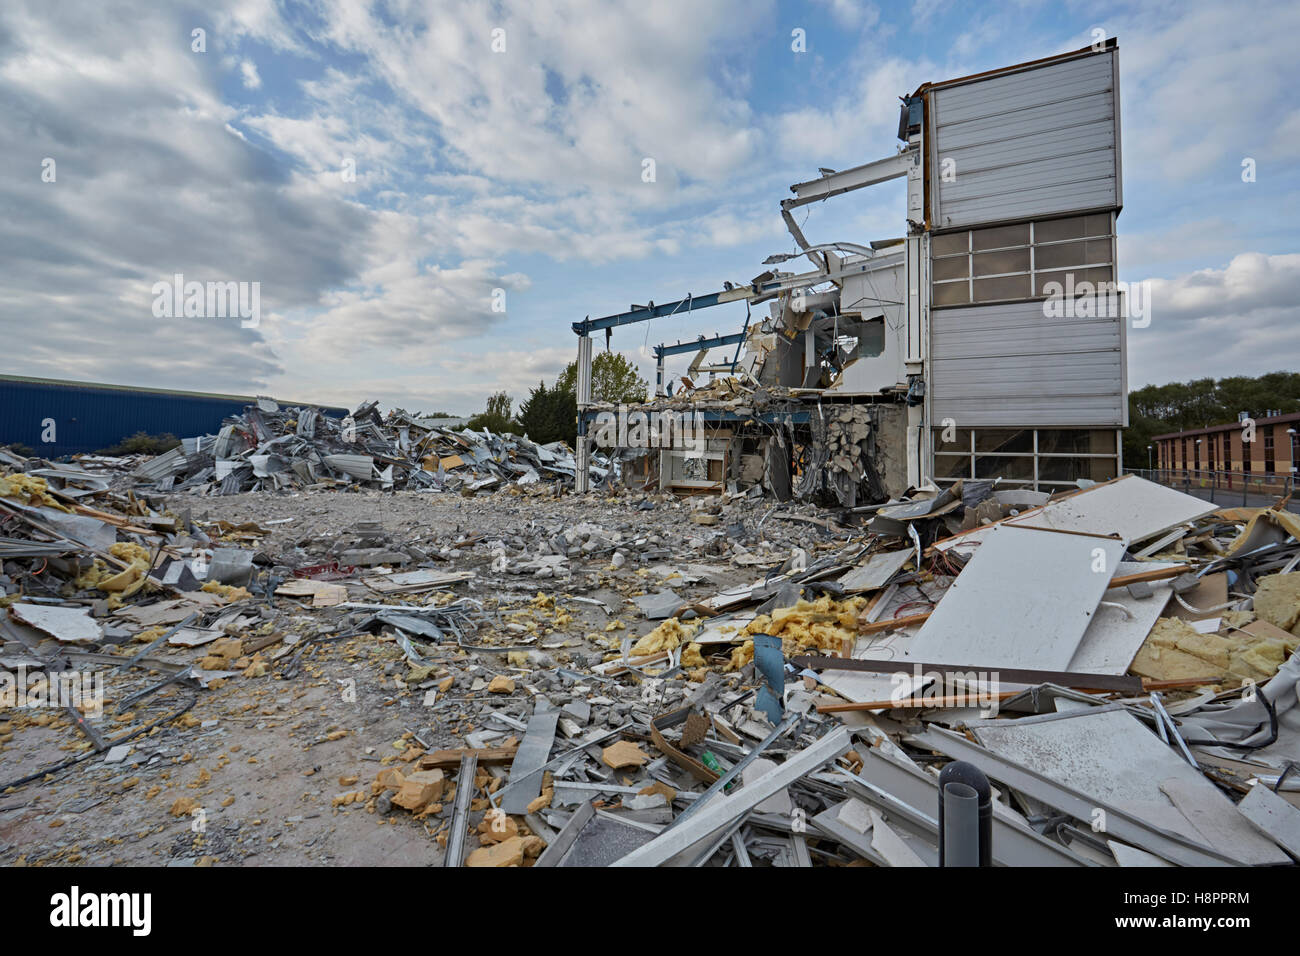 Office building partly demolished with a corner section still standing, England, United Kingdom, UK - Stock Image